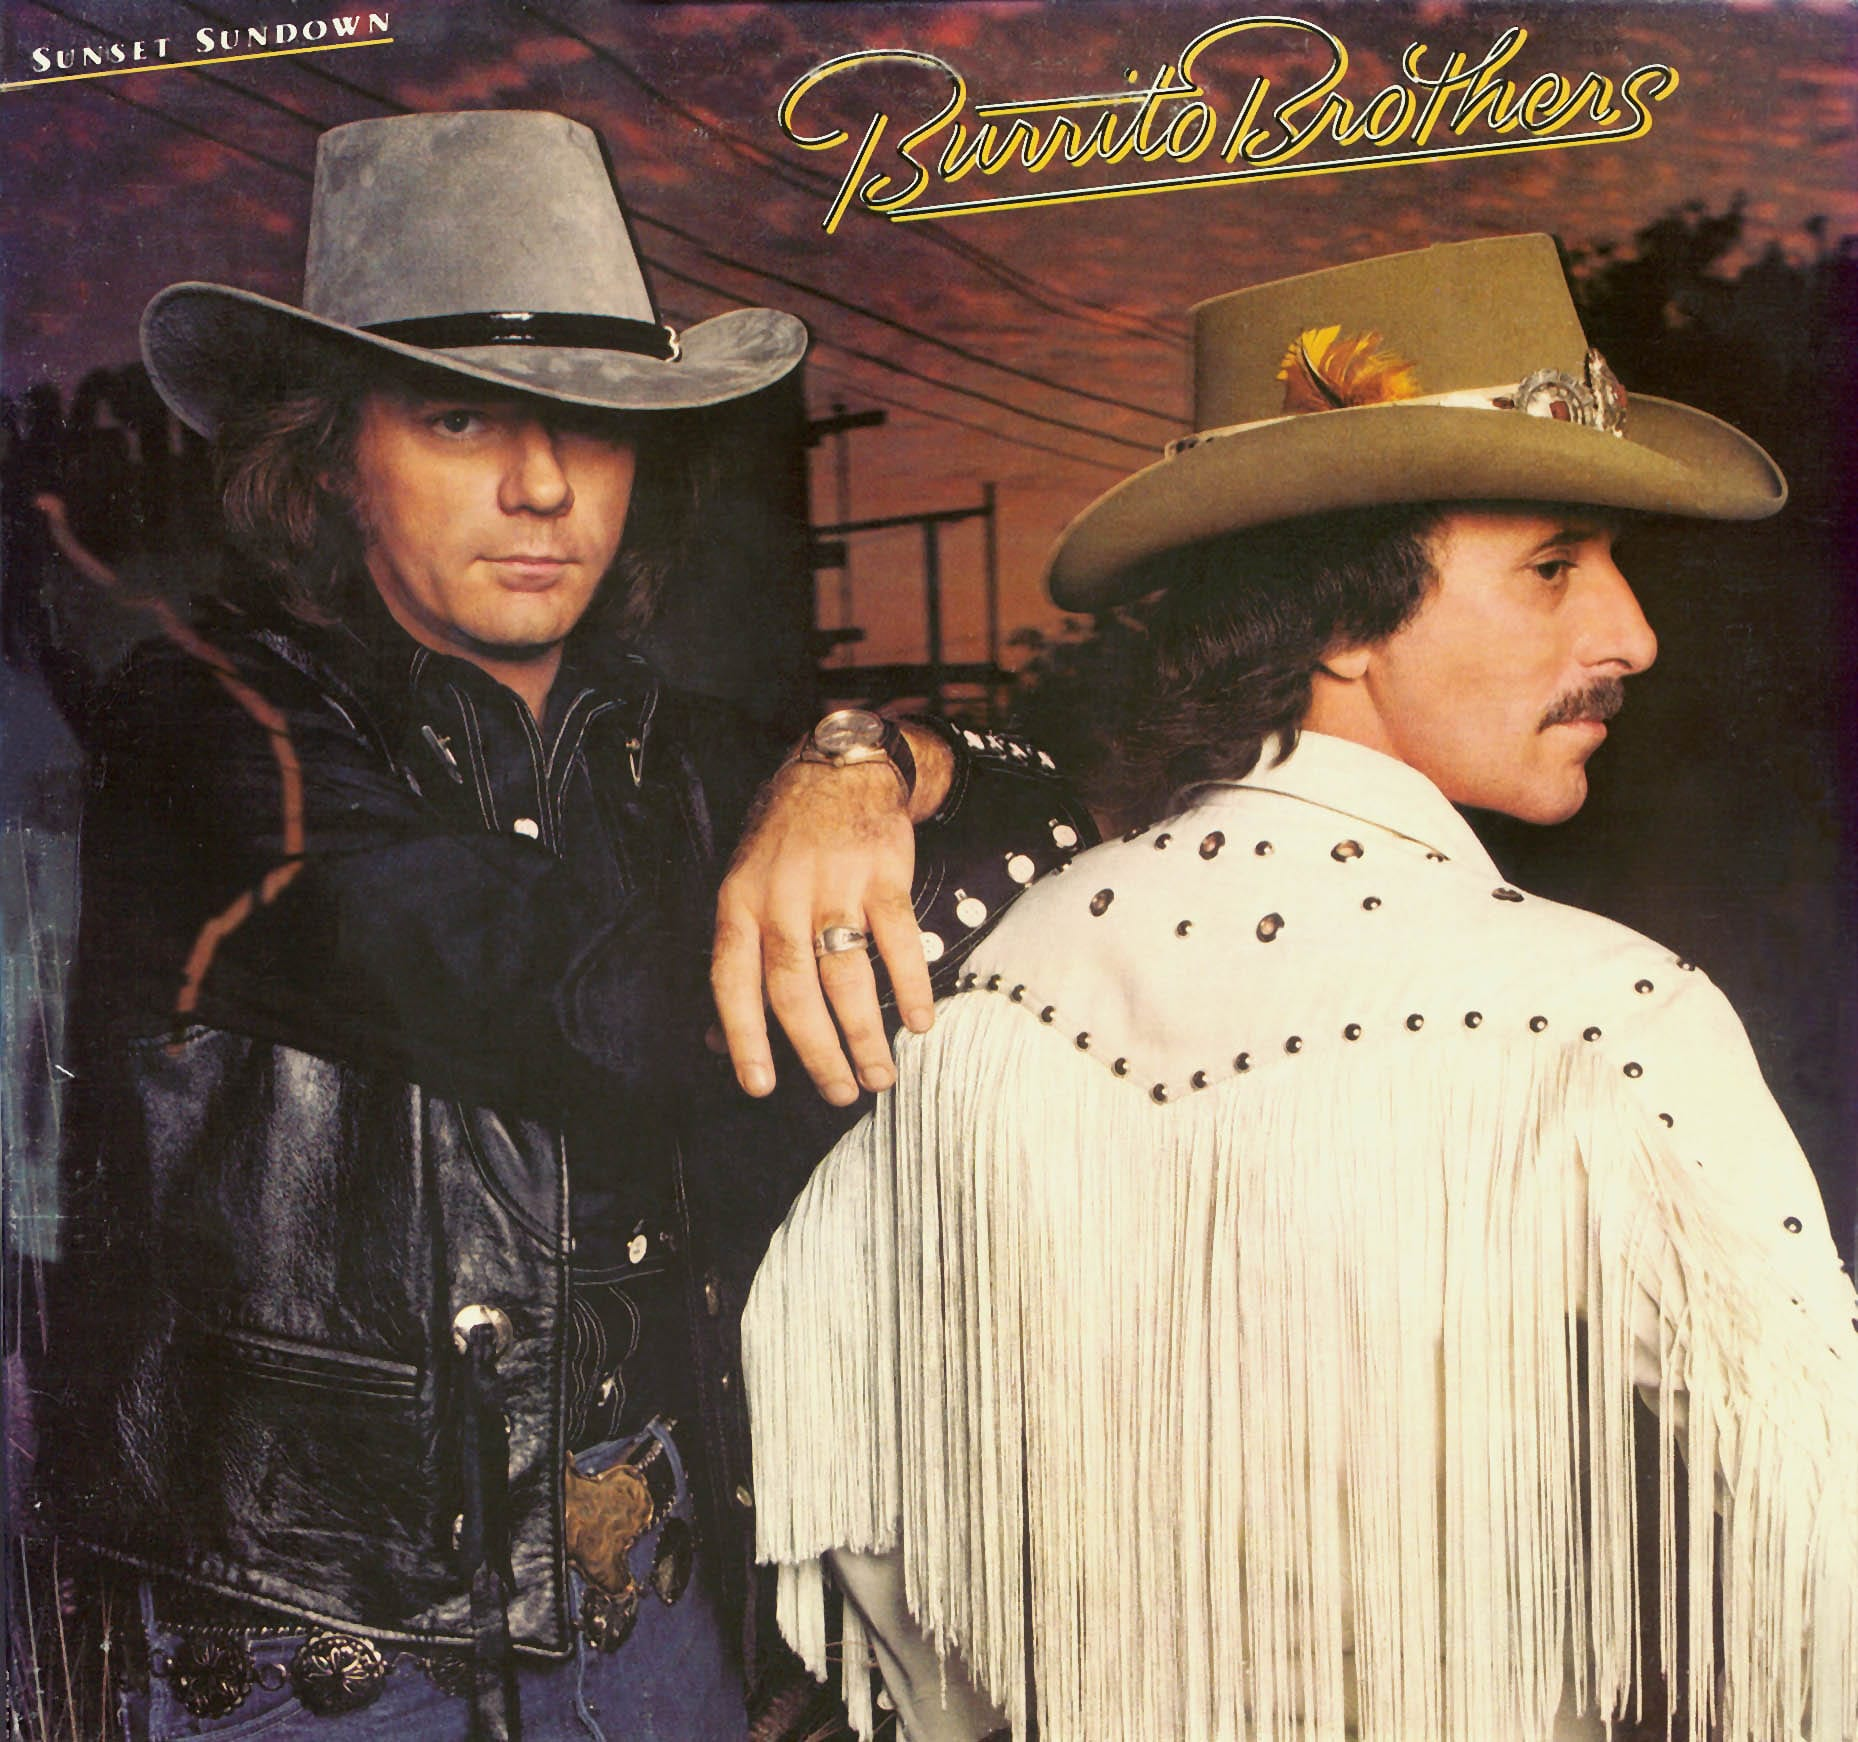 Burrito Brothers - Sunset Sundown (1982) CD 10